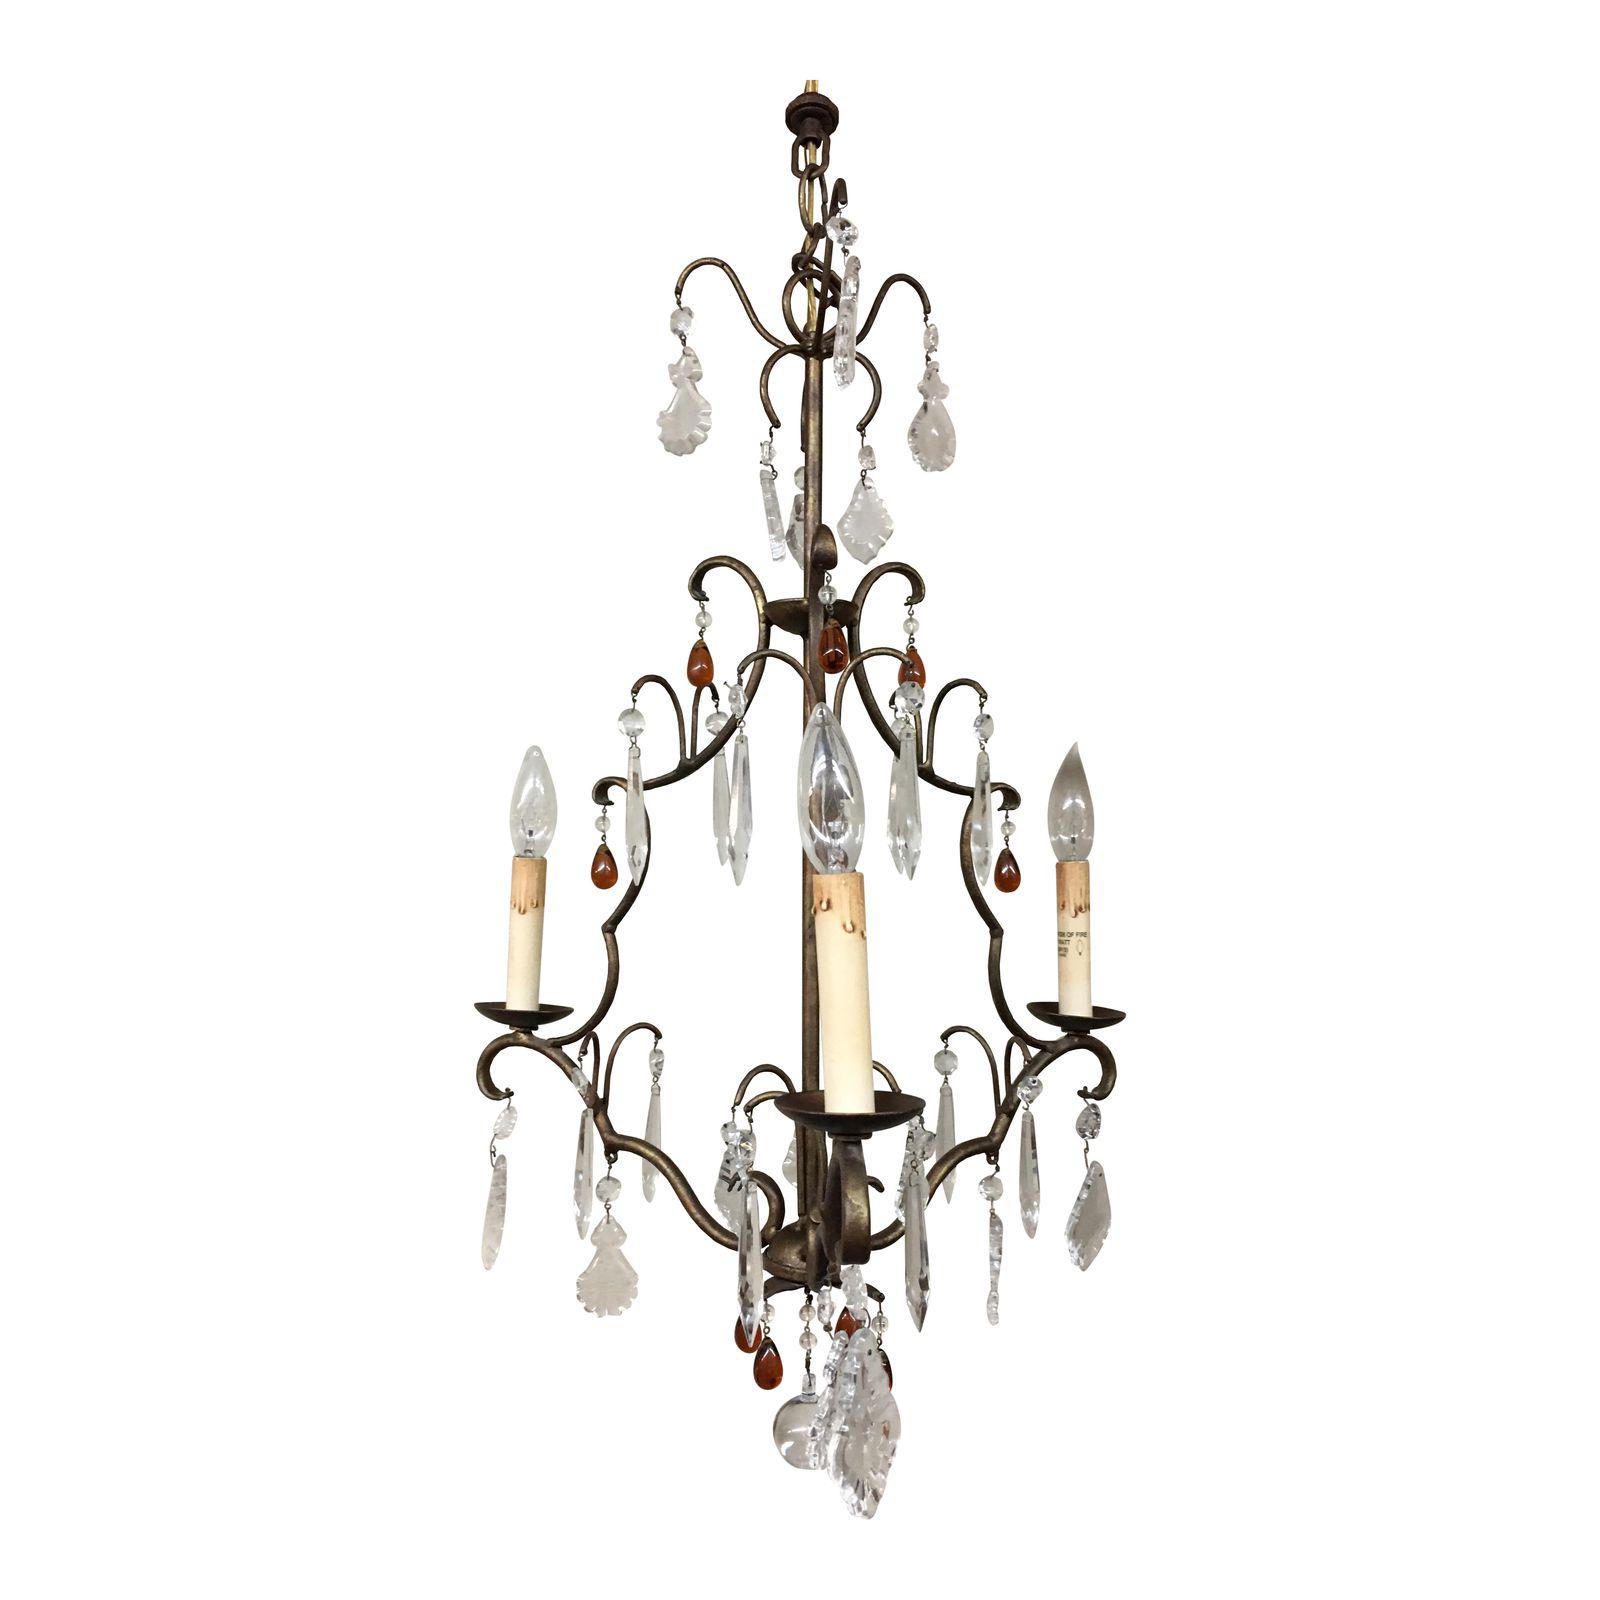 Currey & pany Iron Crystal Chandelier Design Plus Gallery